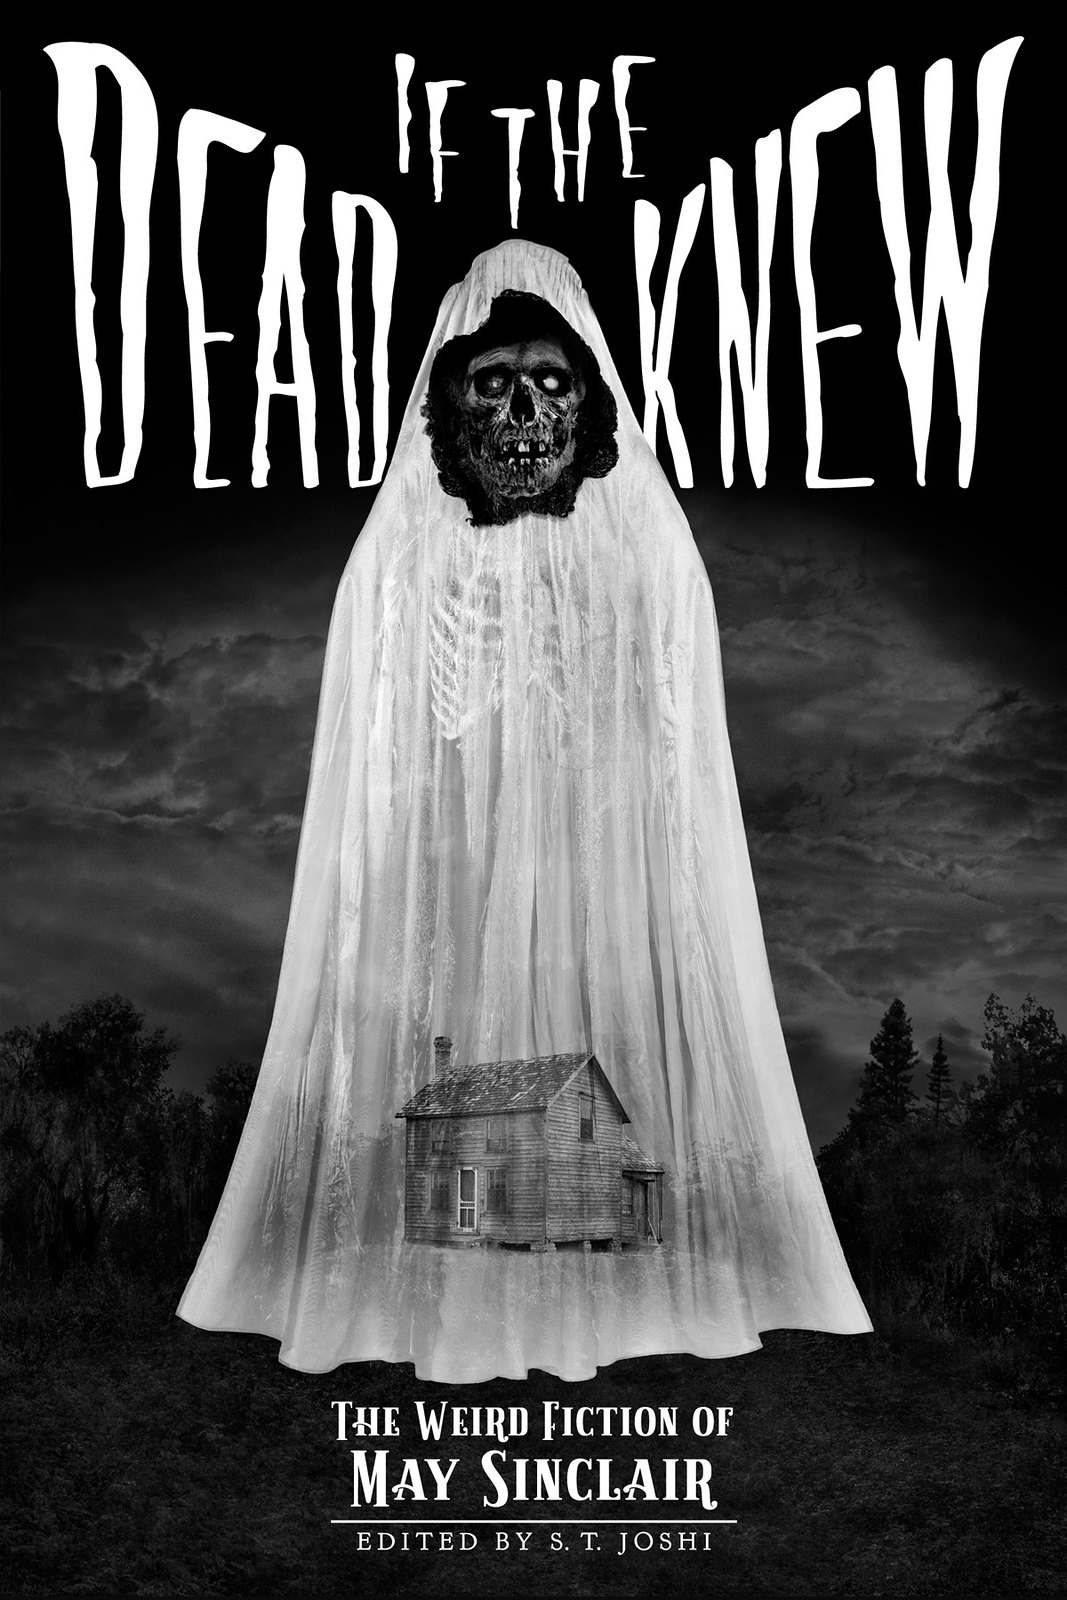 IF THE DEAD KNEW: The Weird Fiction of May Sinclair.